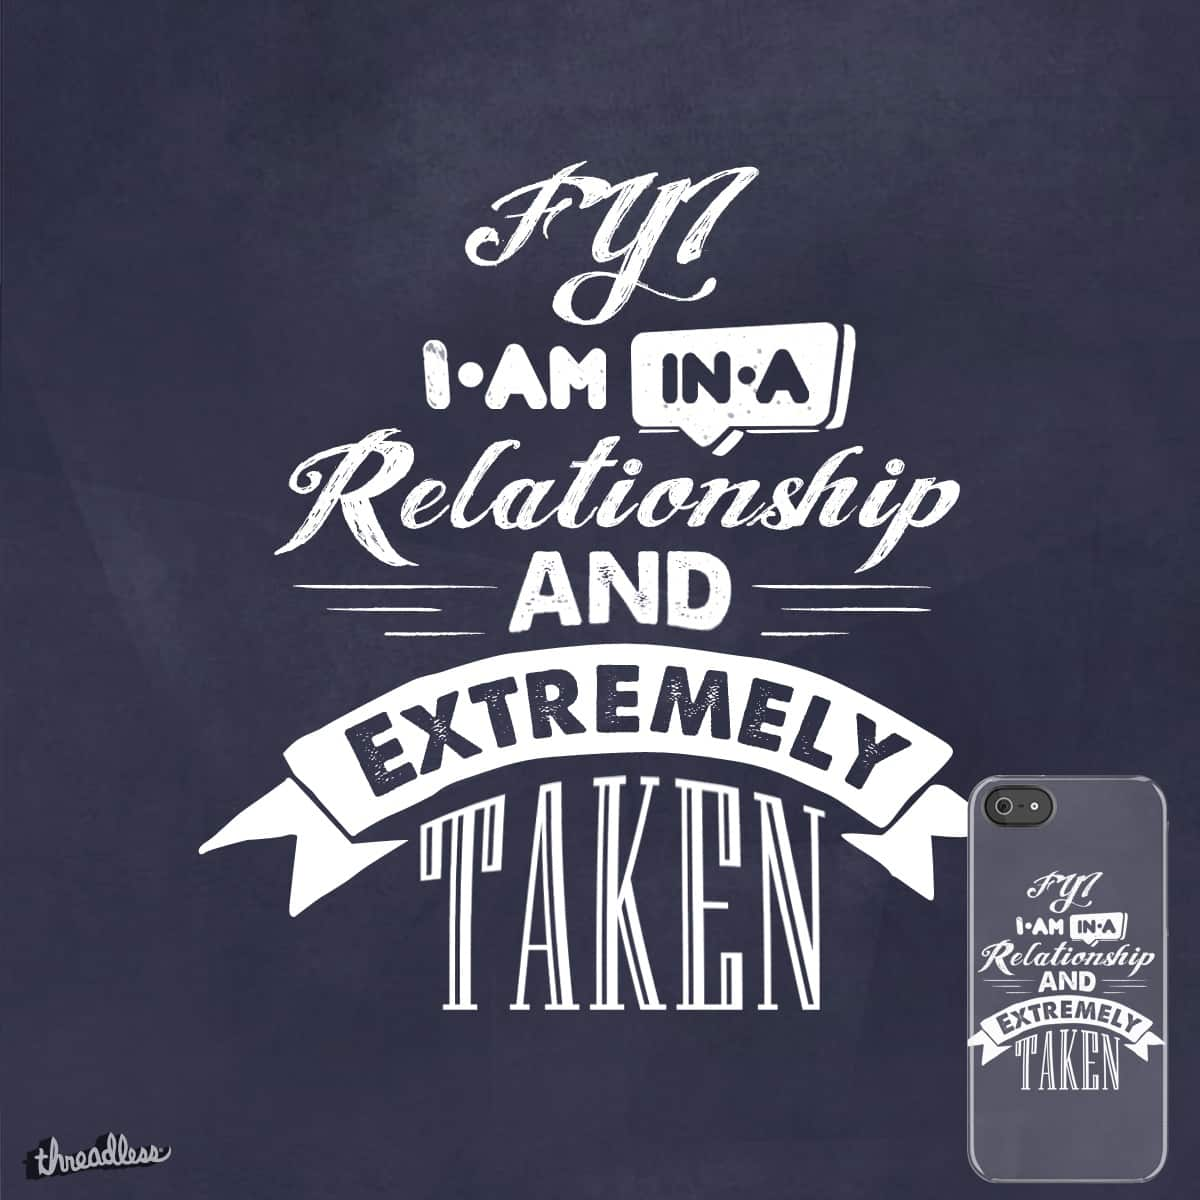 I am in a relationship & extremely taken by thhunson on Threadless